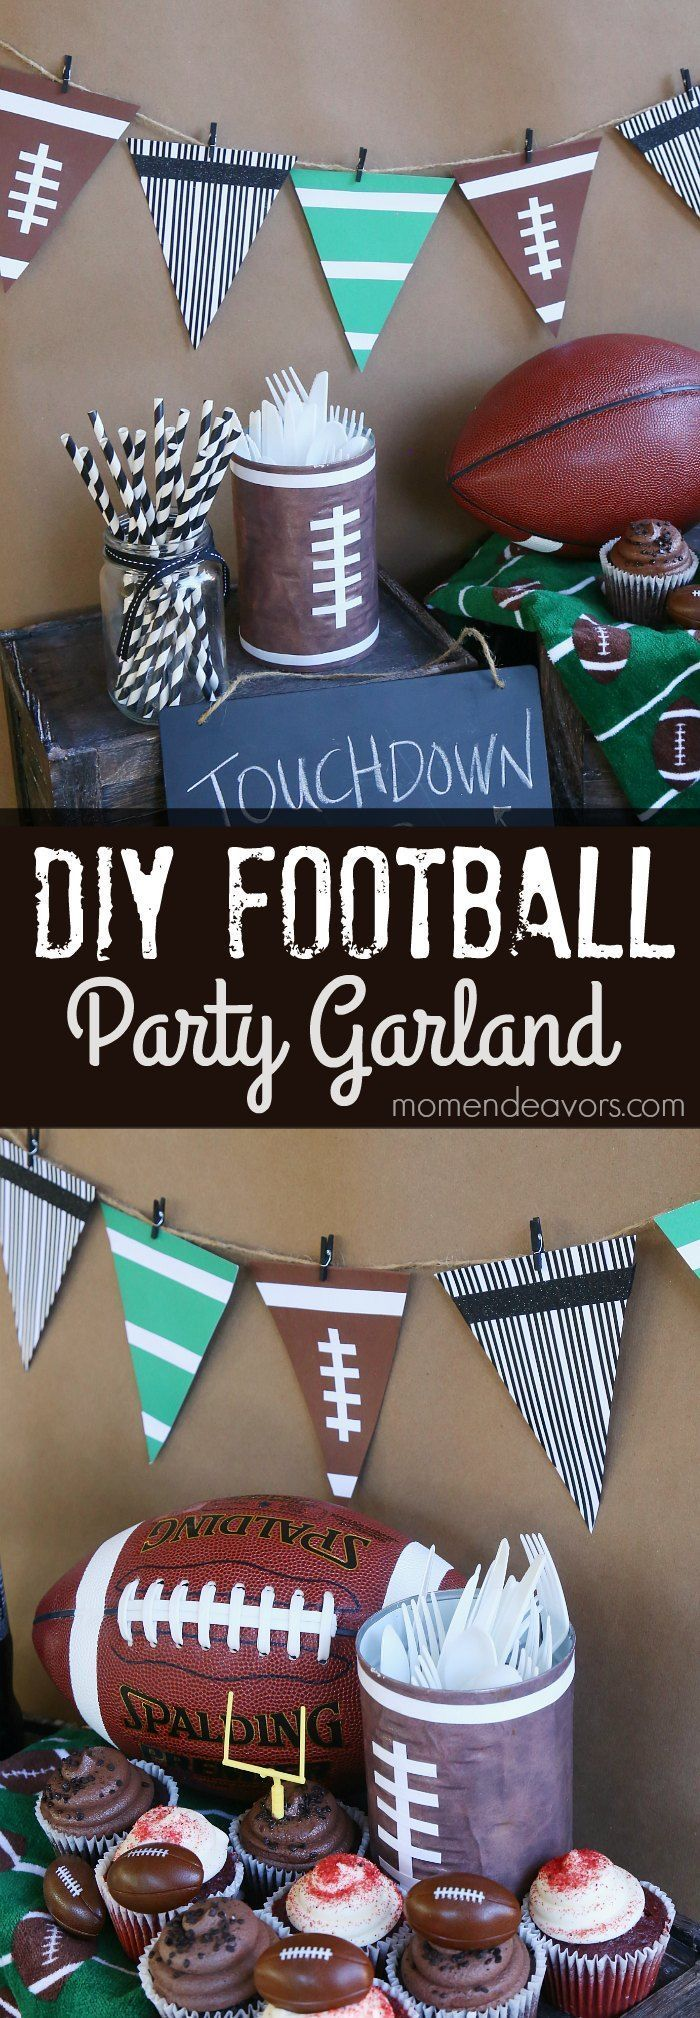 DIY Football Party Garland - directions for making a simple football bunting for tailgates or football parties. #HandsonCrafty AD